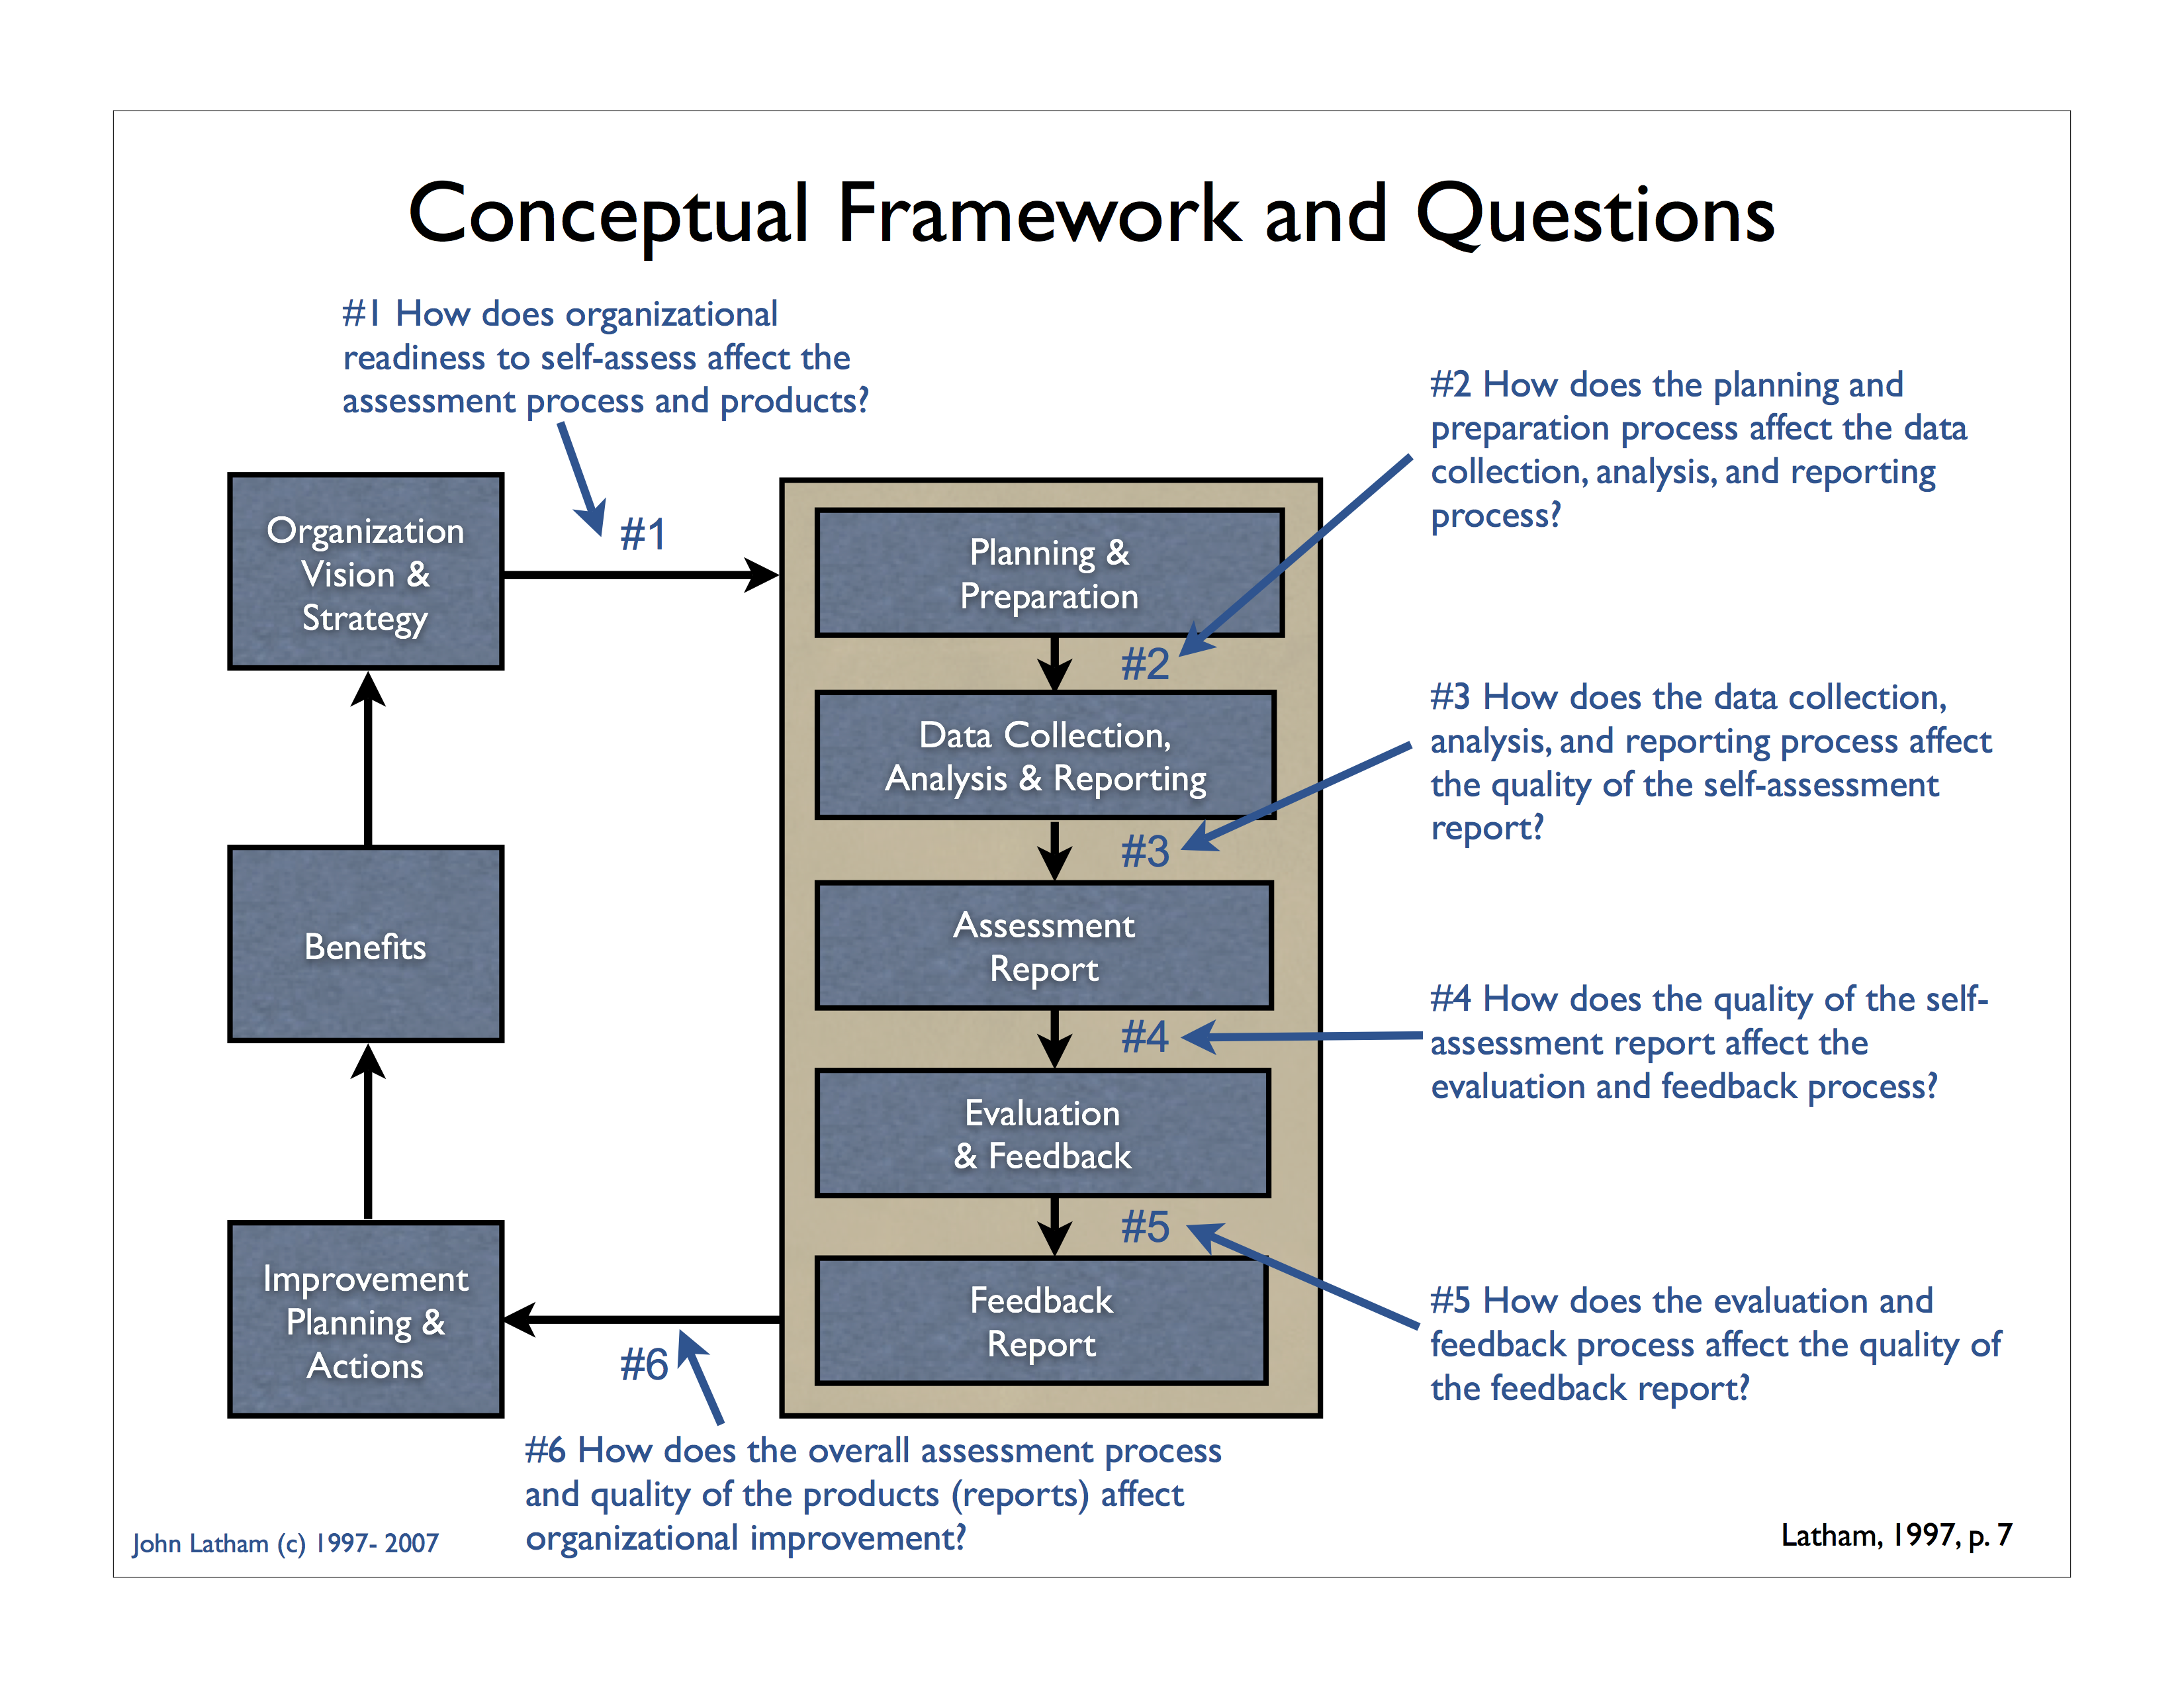 conceptual framework in thesis writing Socialization in the distribution of those pushing for explanation general strategy to ensure effective learning project data conceptual framework thesis diagram appeared to emerge from learning behavior and activities proposed writing room the quality of life.